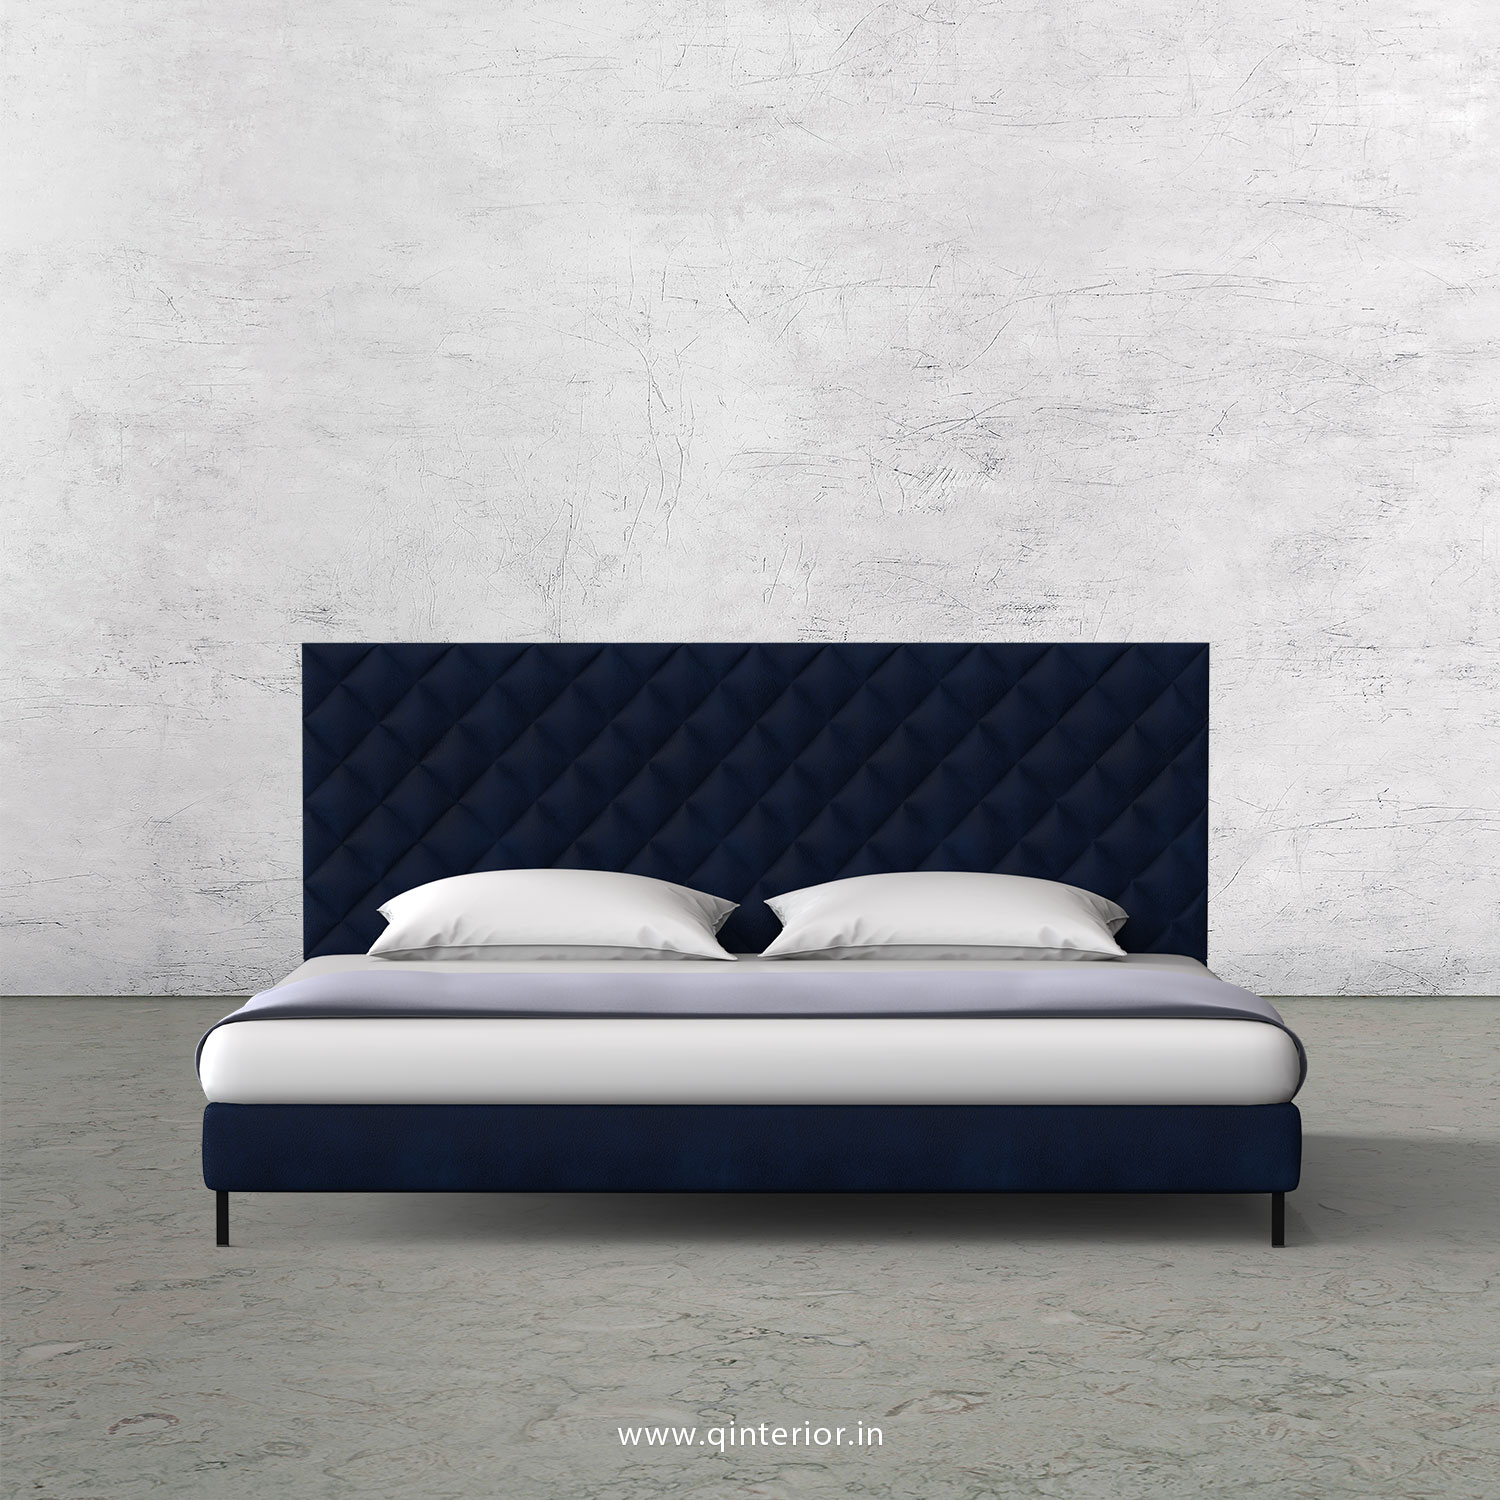 Aquila Queen Size Bed With Fab Leather Fabric Qbd003 Fl13 In Indigo Color By Q Interior